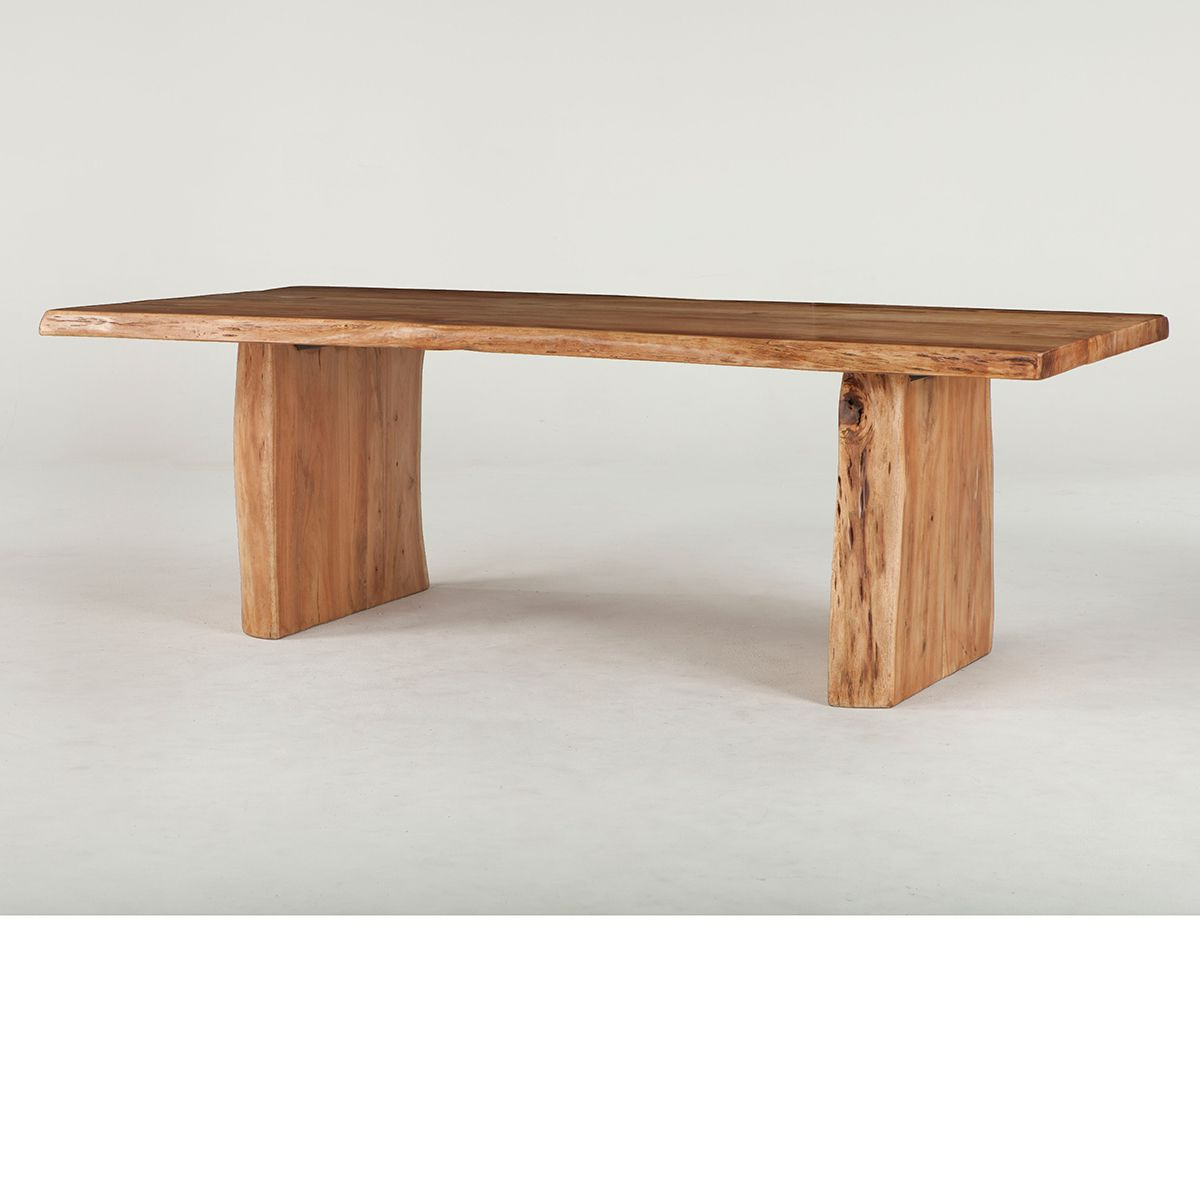 Preferred The Dump Furniture – Live Edge Dining Table (View 14 of 25)